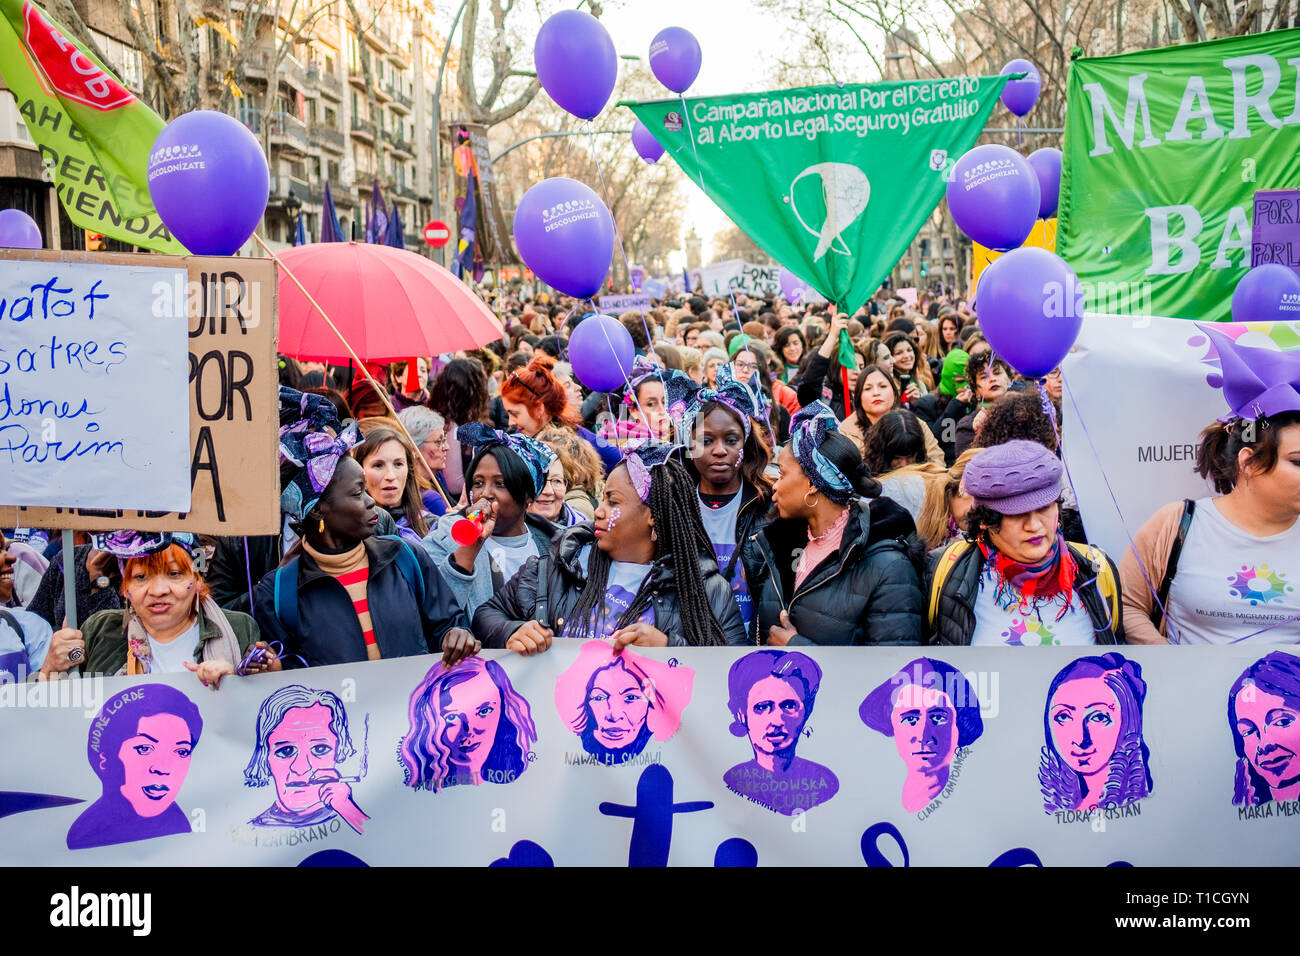 Barcelona, Spain - 8 march 2019:  crows of women rally in the city center during woman's day for better human rights for women and feminism - Stock Image